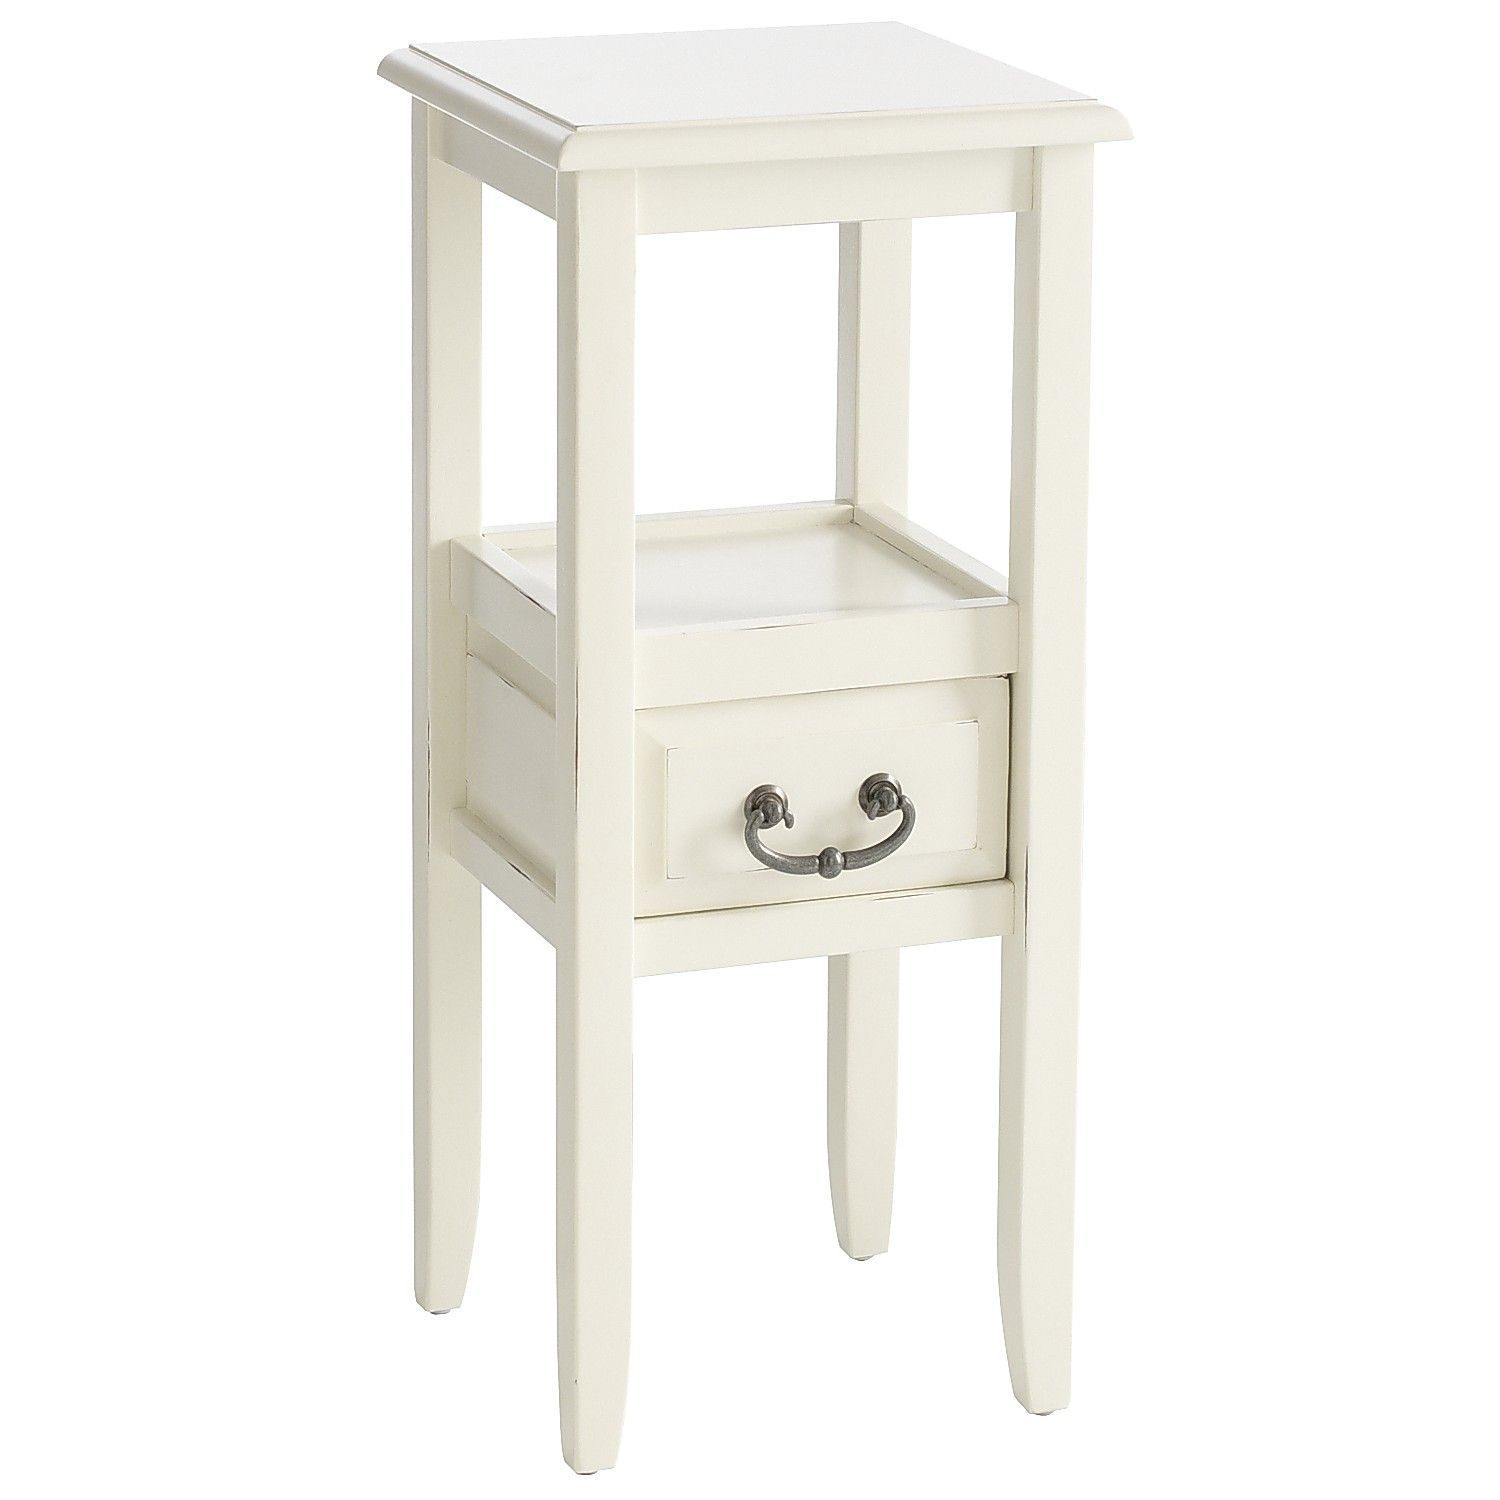 Anywhere Antique White Pedestal Table With Pull Handles Con